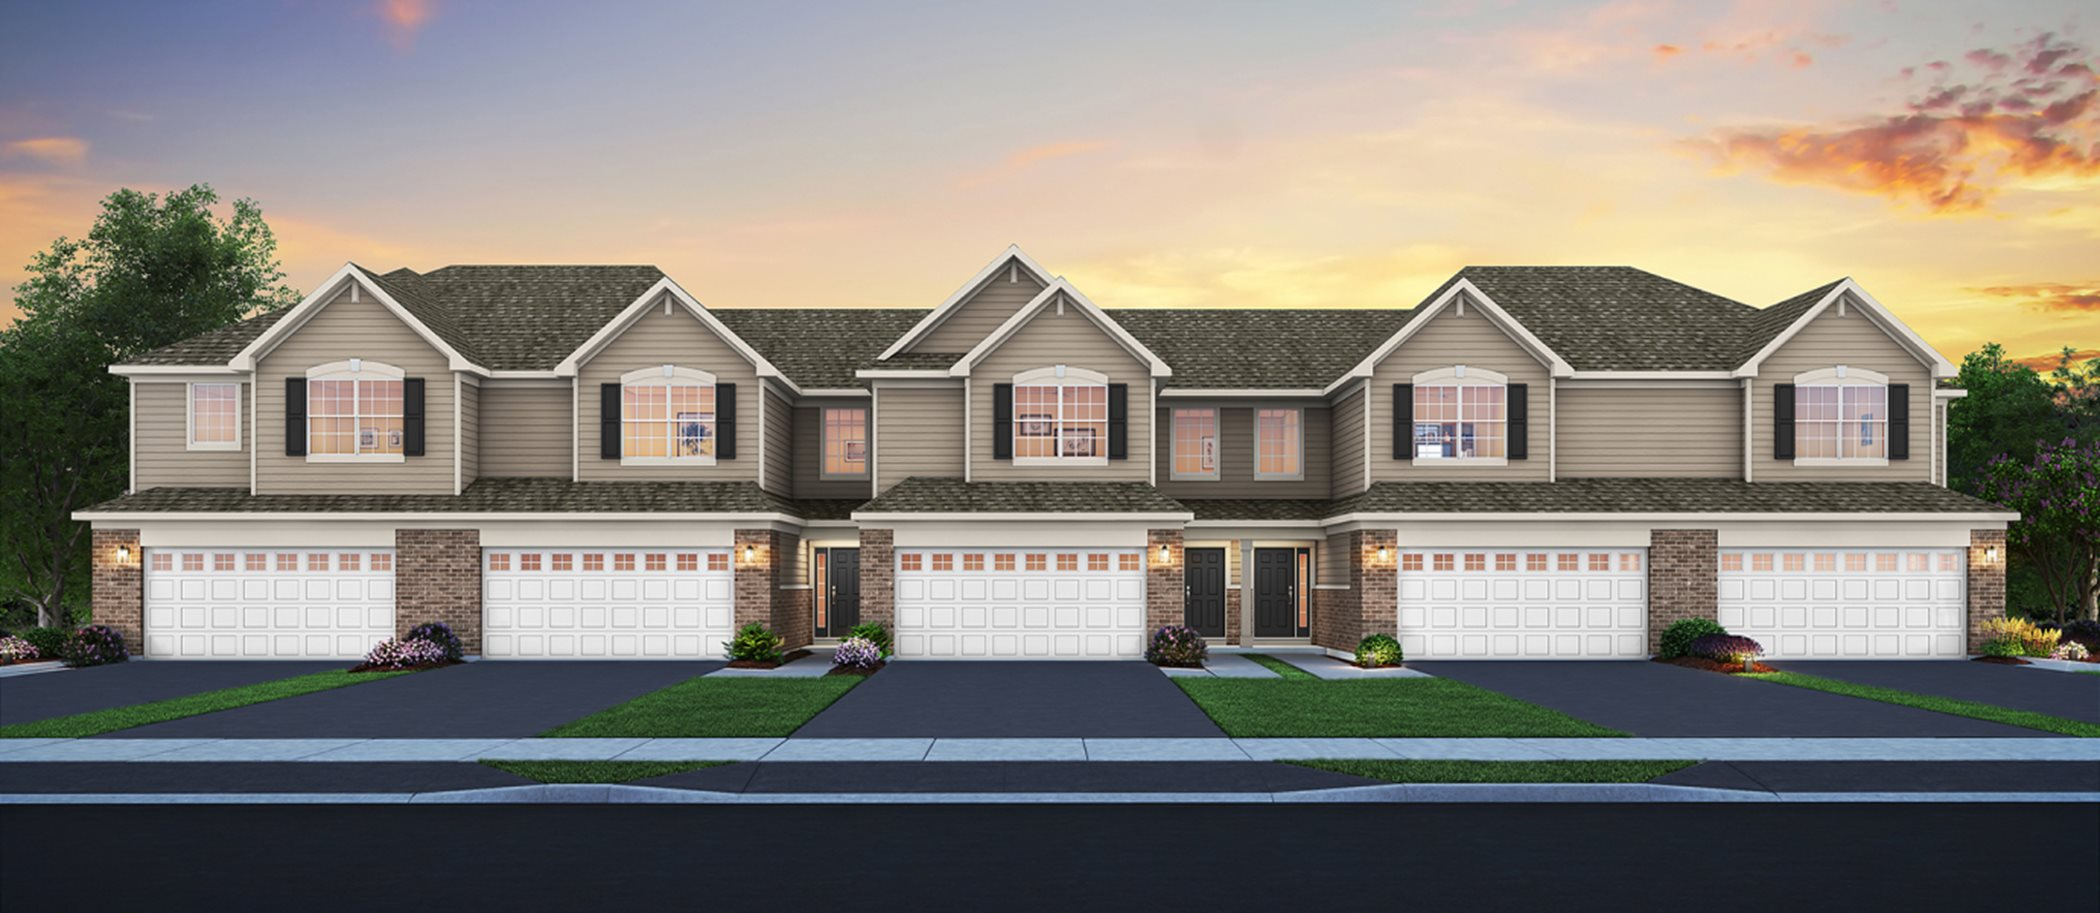 Townhomes at Greywall Club